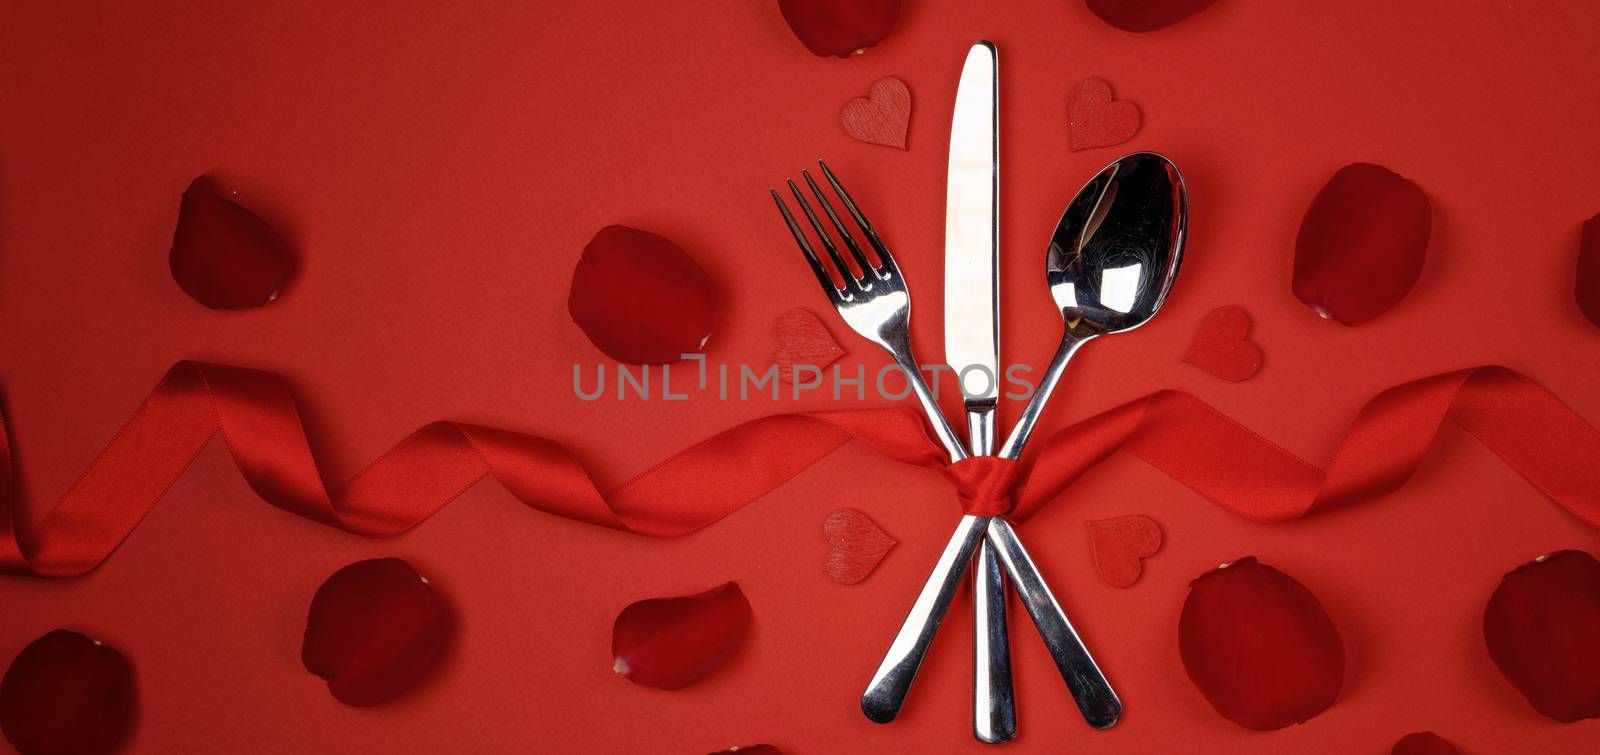 Cutlery set tied with silk ribbon rose petals and hearts on red background Valentine day romantic dinner concept